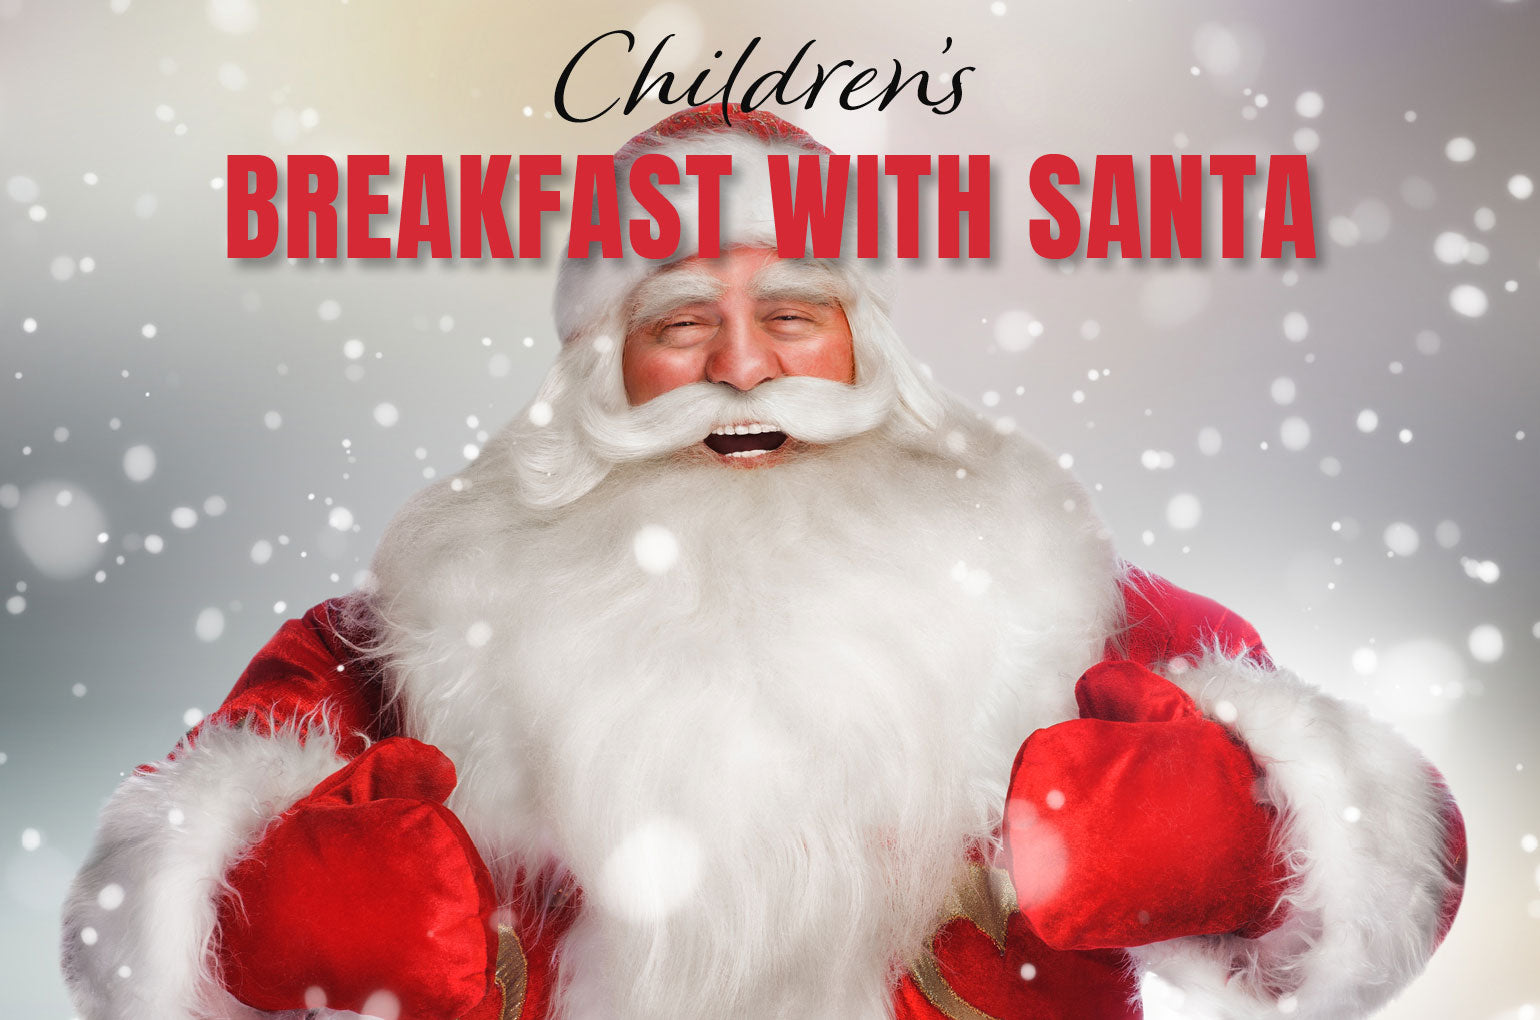 Children's Breakfast with Santa at Hoopers